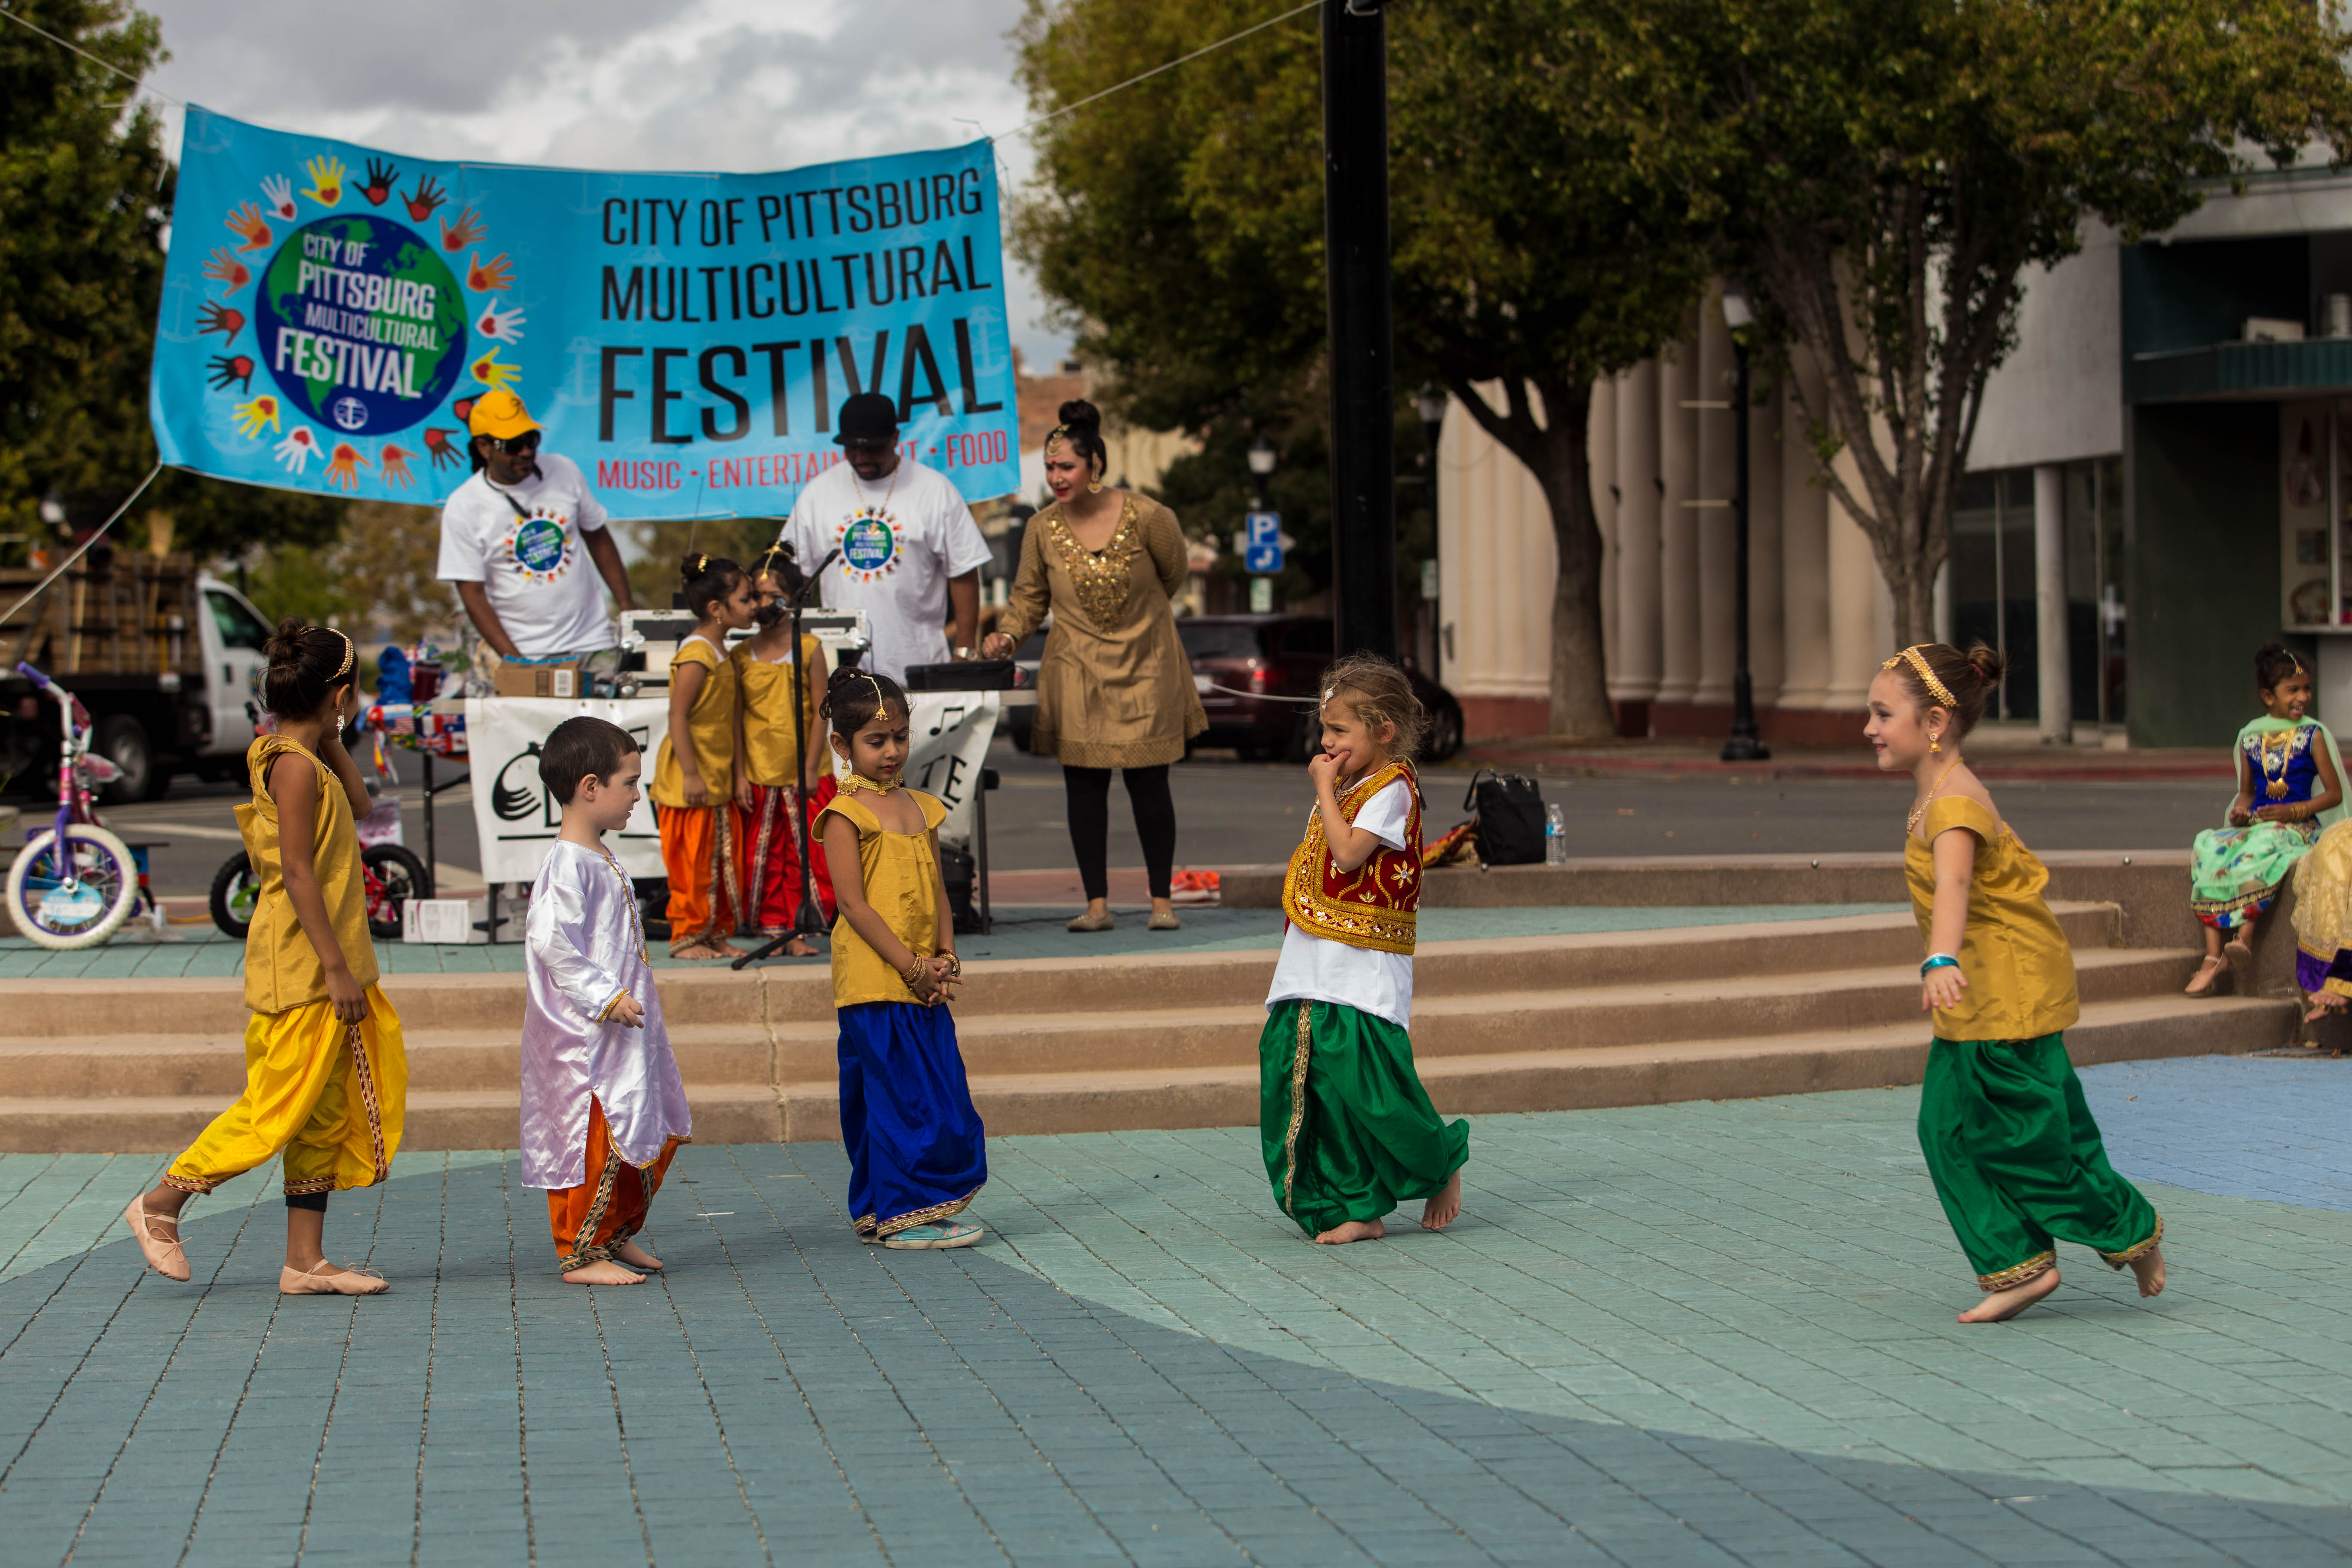 CITY_PITTSBURG_MULTICULTURAL_OCTOBER_2016 (655)